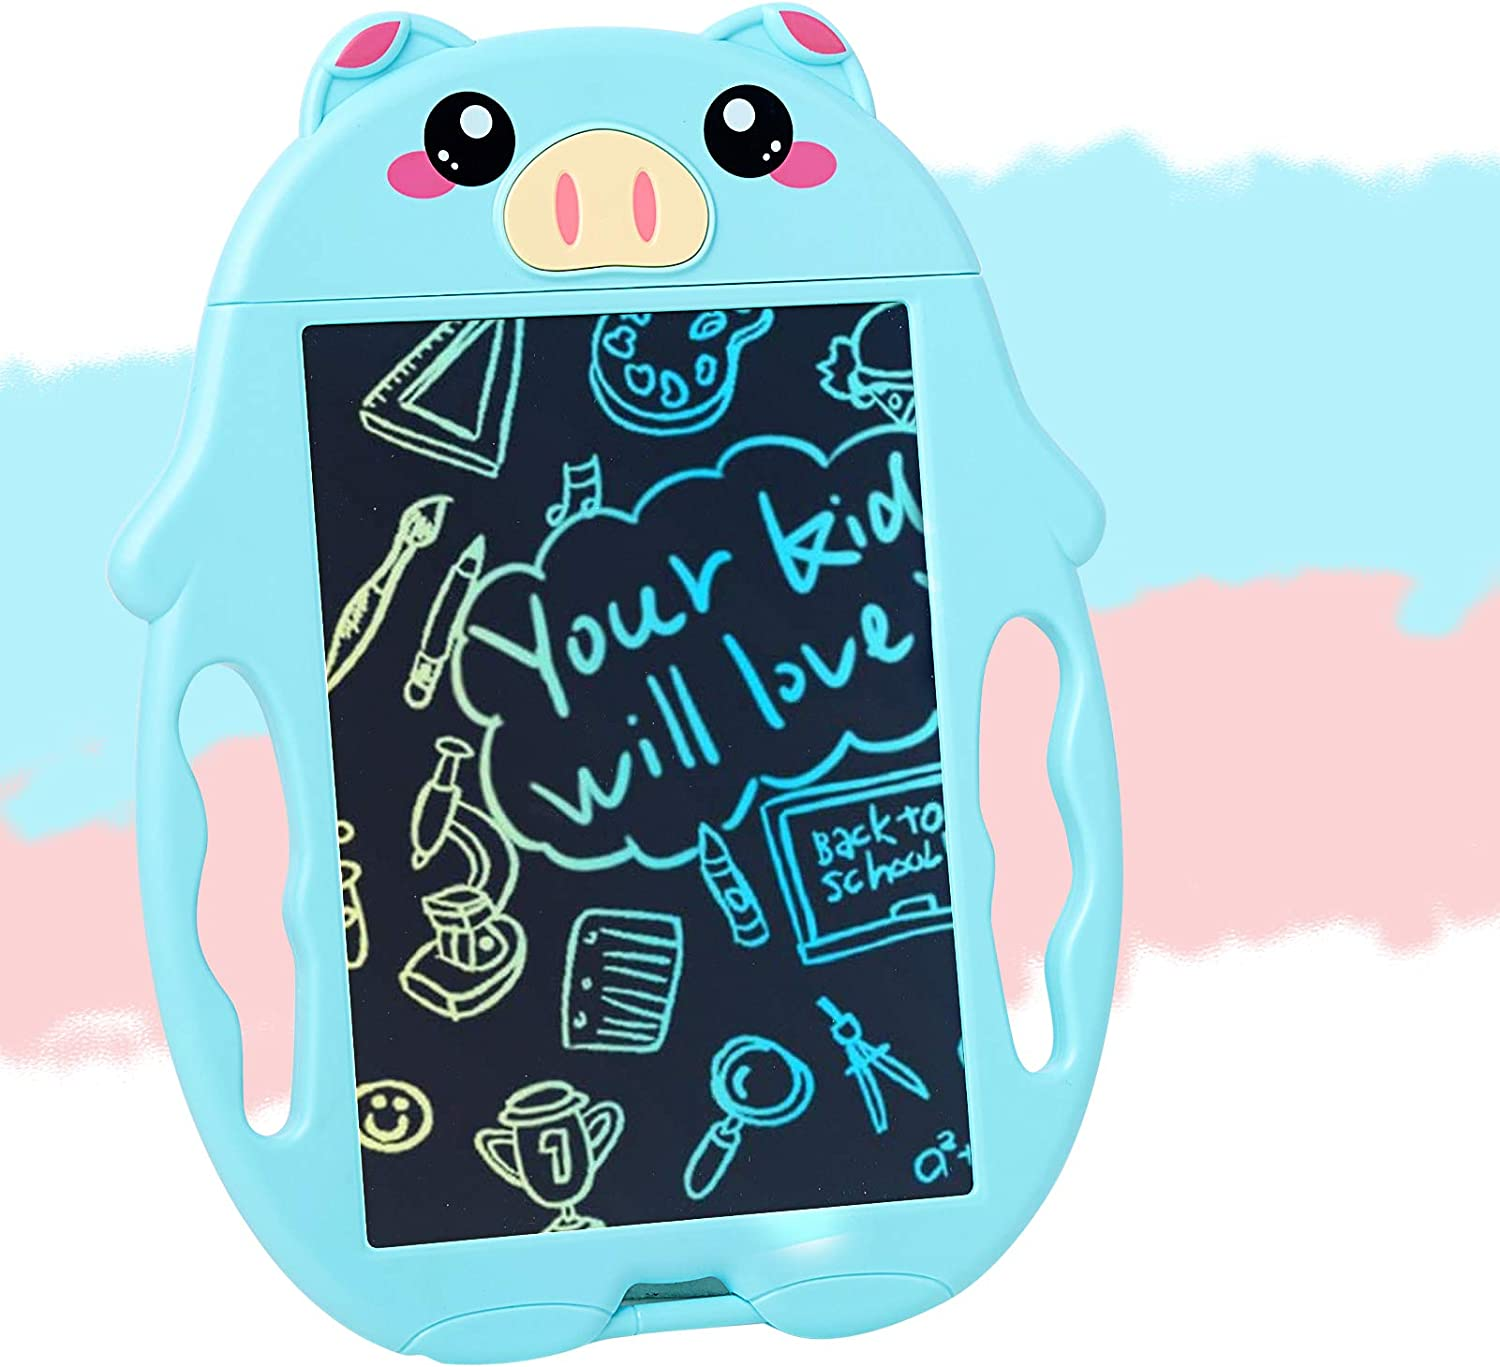 Blue Colorful LCD Writing Tablet for 3-6 Years Old Girls Boys 8,5 Inch Piglet Shape LCD Writing Tablet for Kids,Toddler Doodle Board Kids Drawing Board Educational and Learning Toy for Boys Girls